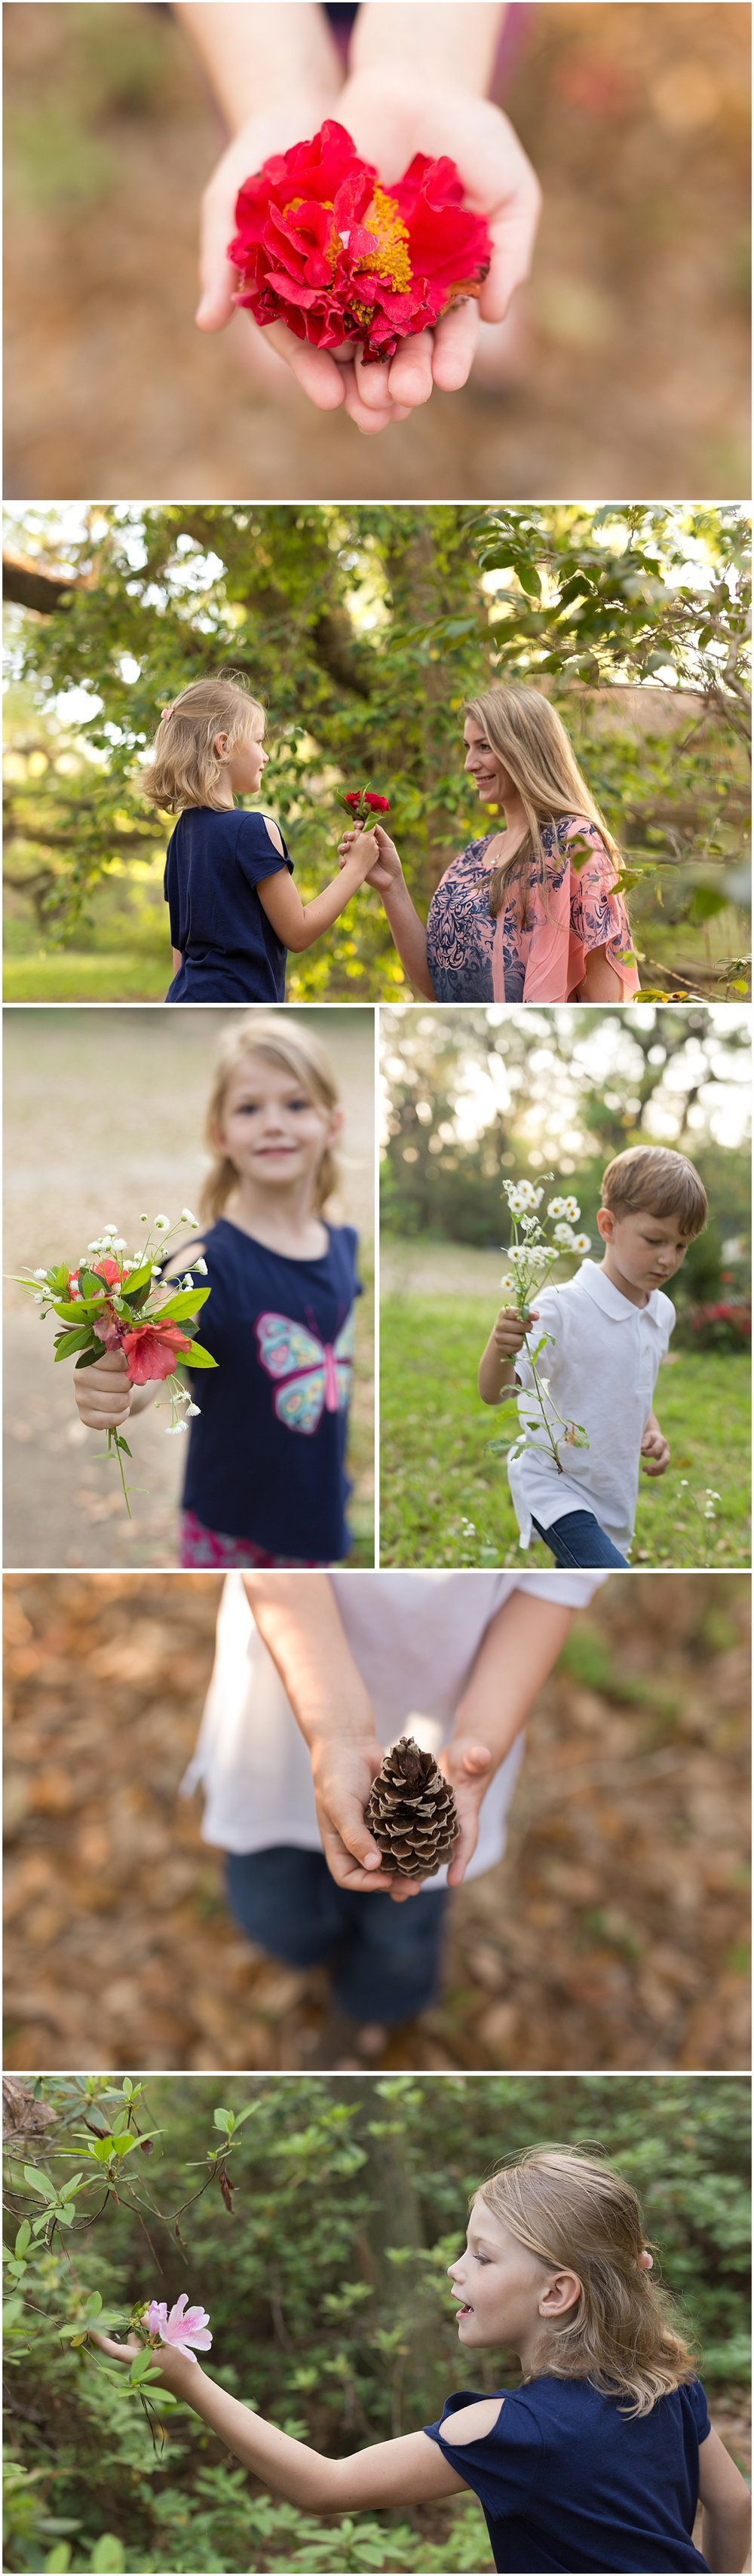 kids picking flowers for parents in the woods - lifestyle portrait session in Ocean Springs, MS